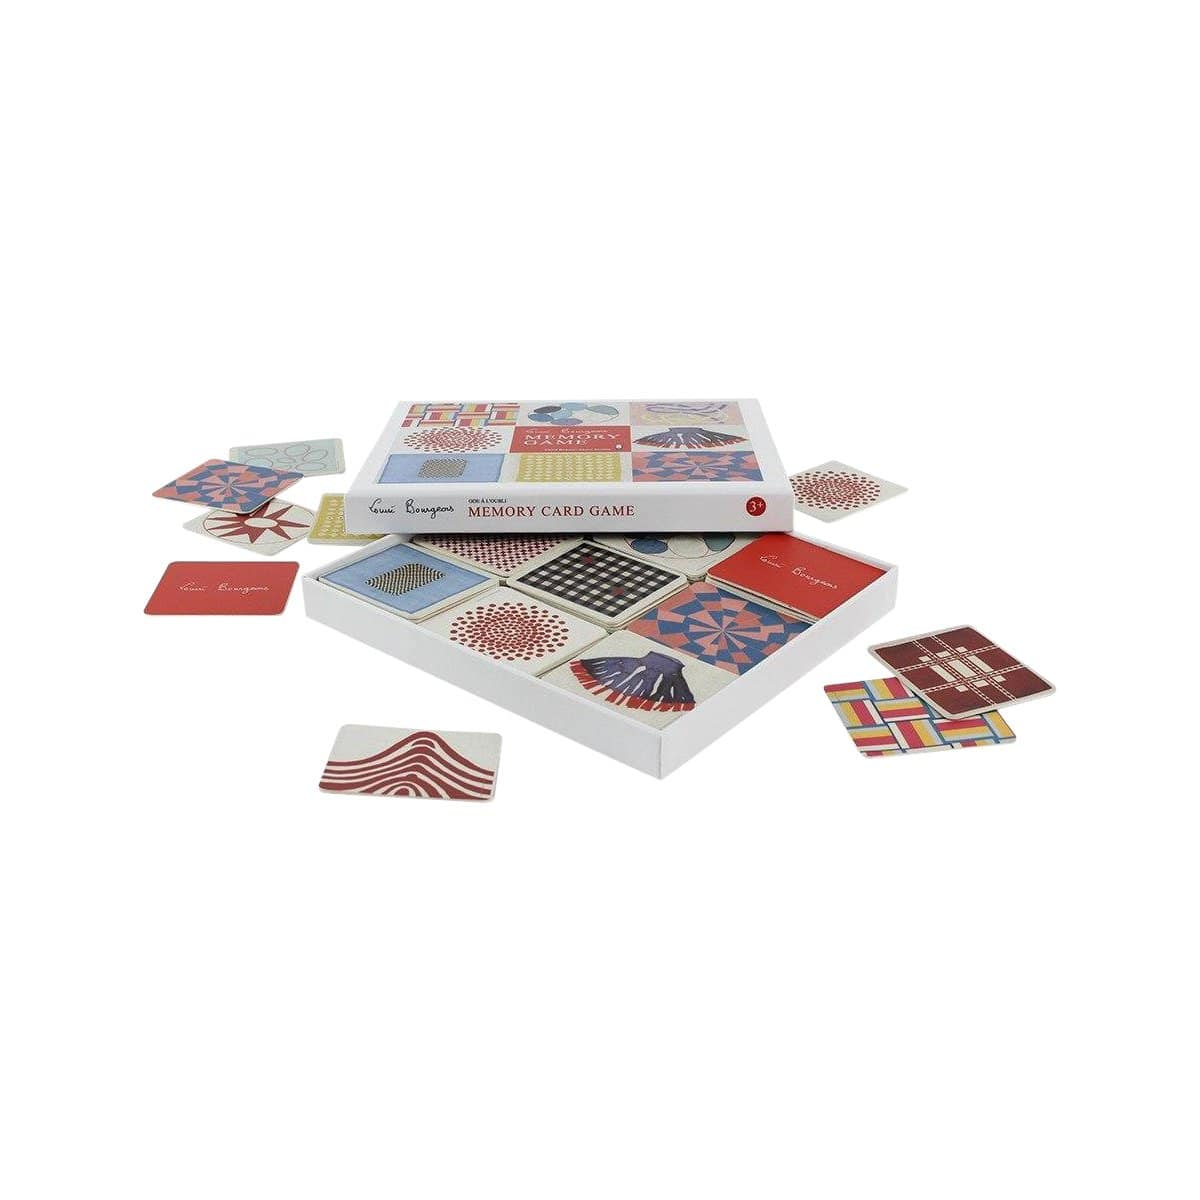 Third Drawer Down Board Games Memory Card Set x Louise Bourgeois